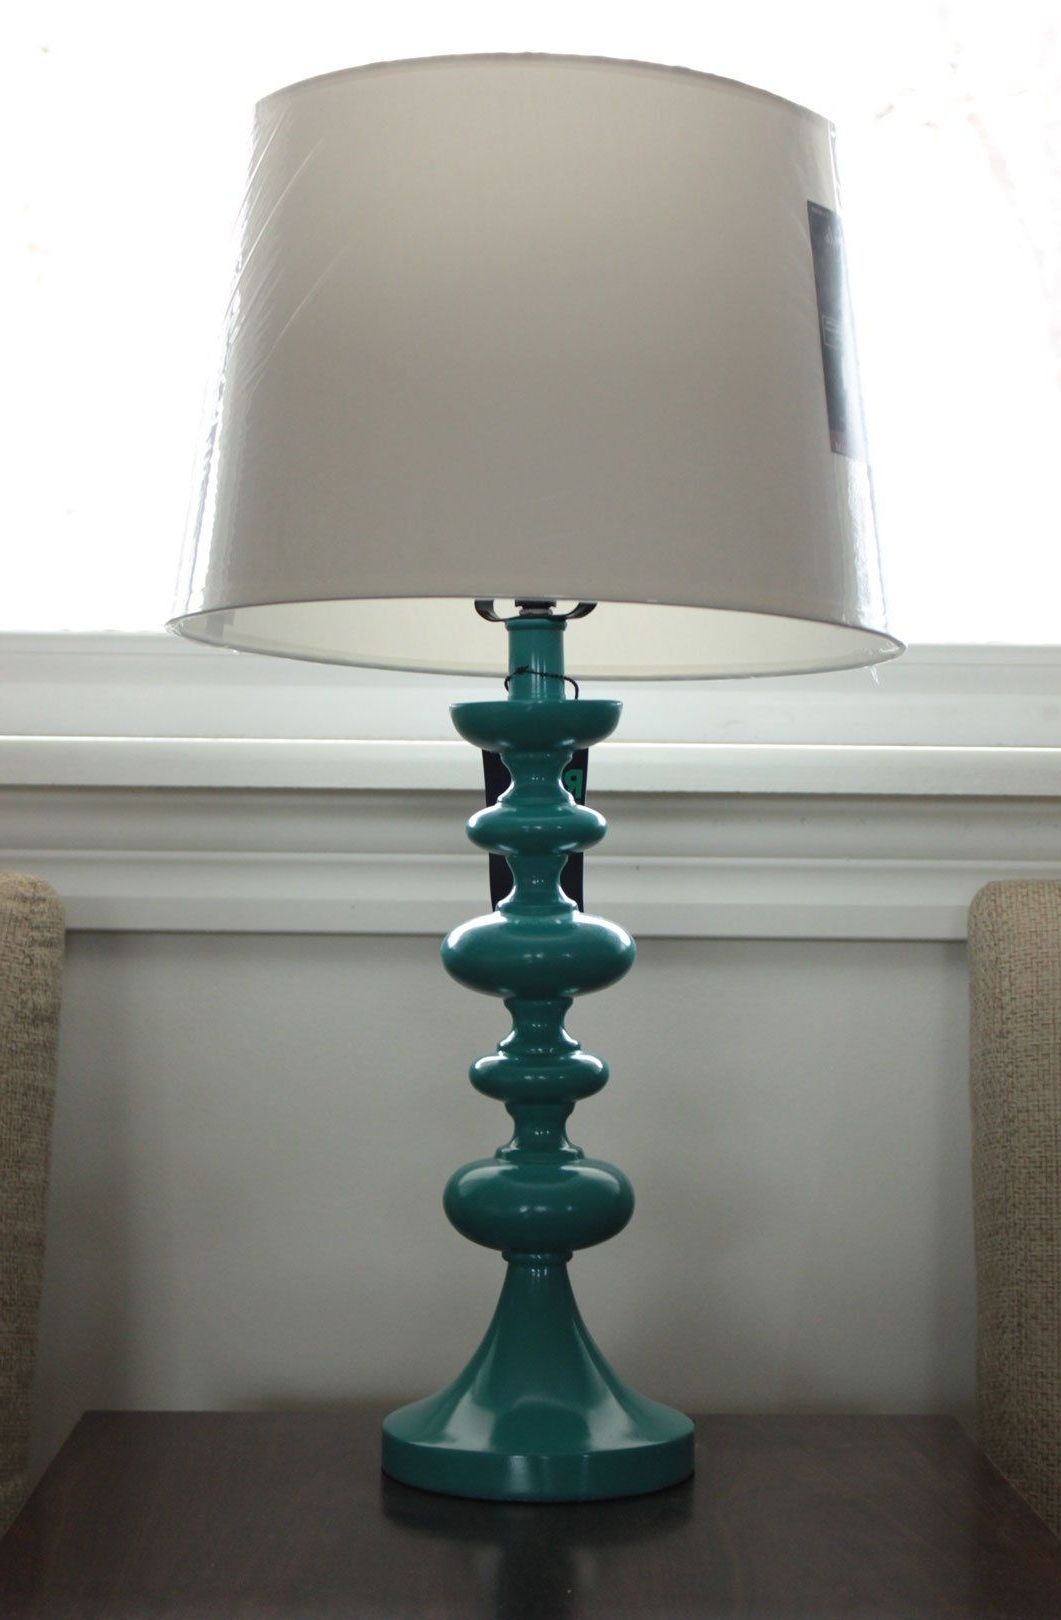 Living Room Table Lamps At Target Within Popular Target Table Lamp Teal (View 2 of 20)